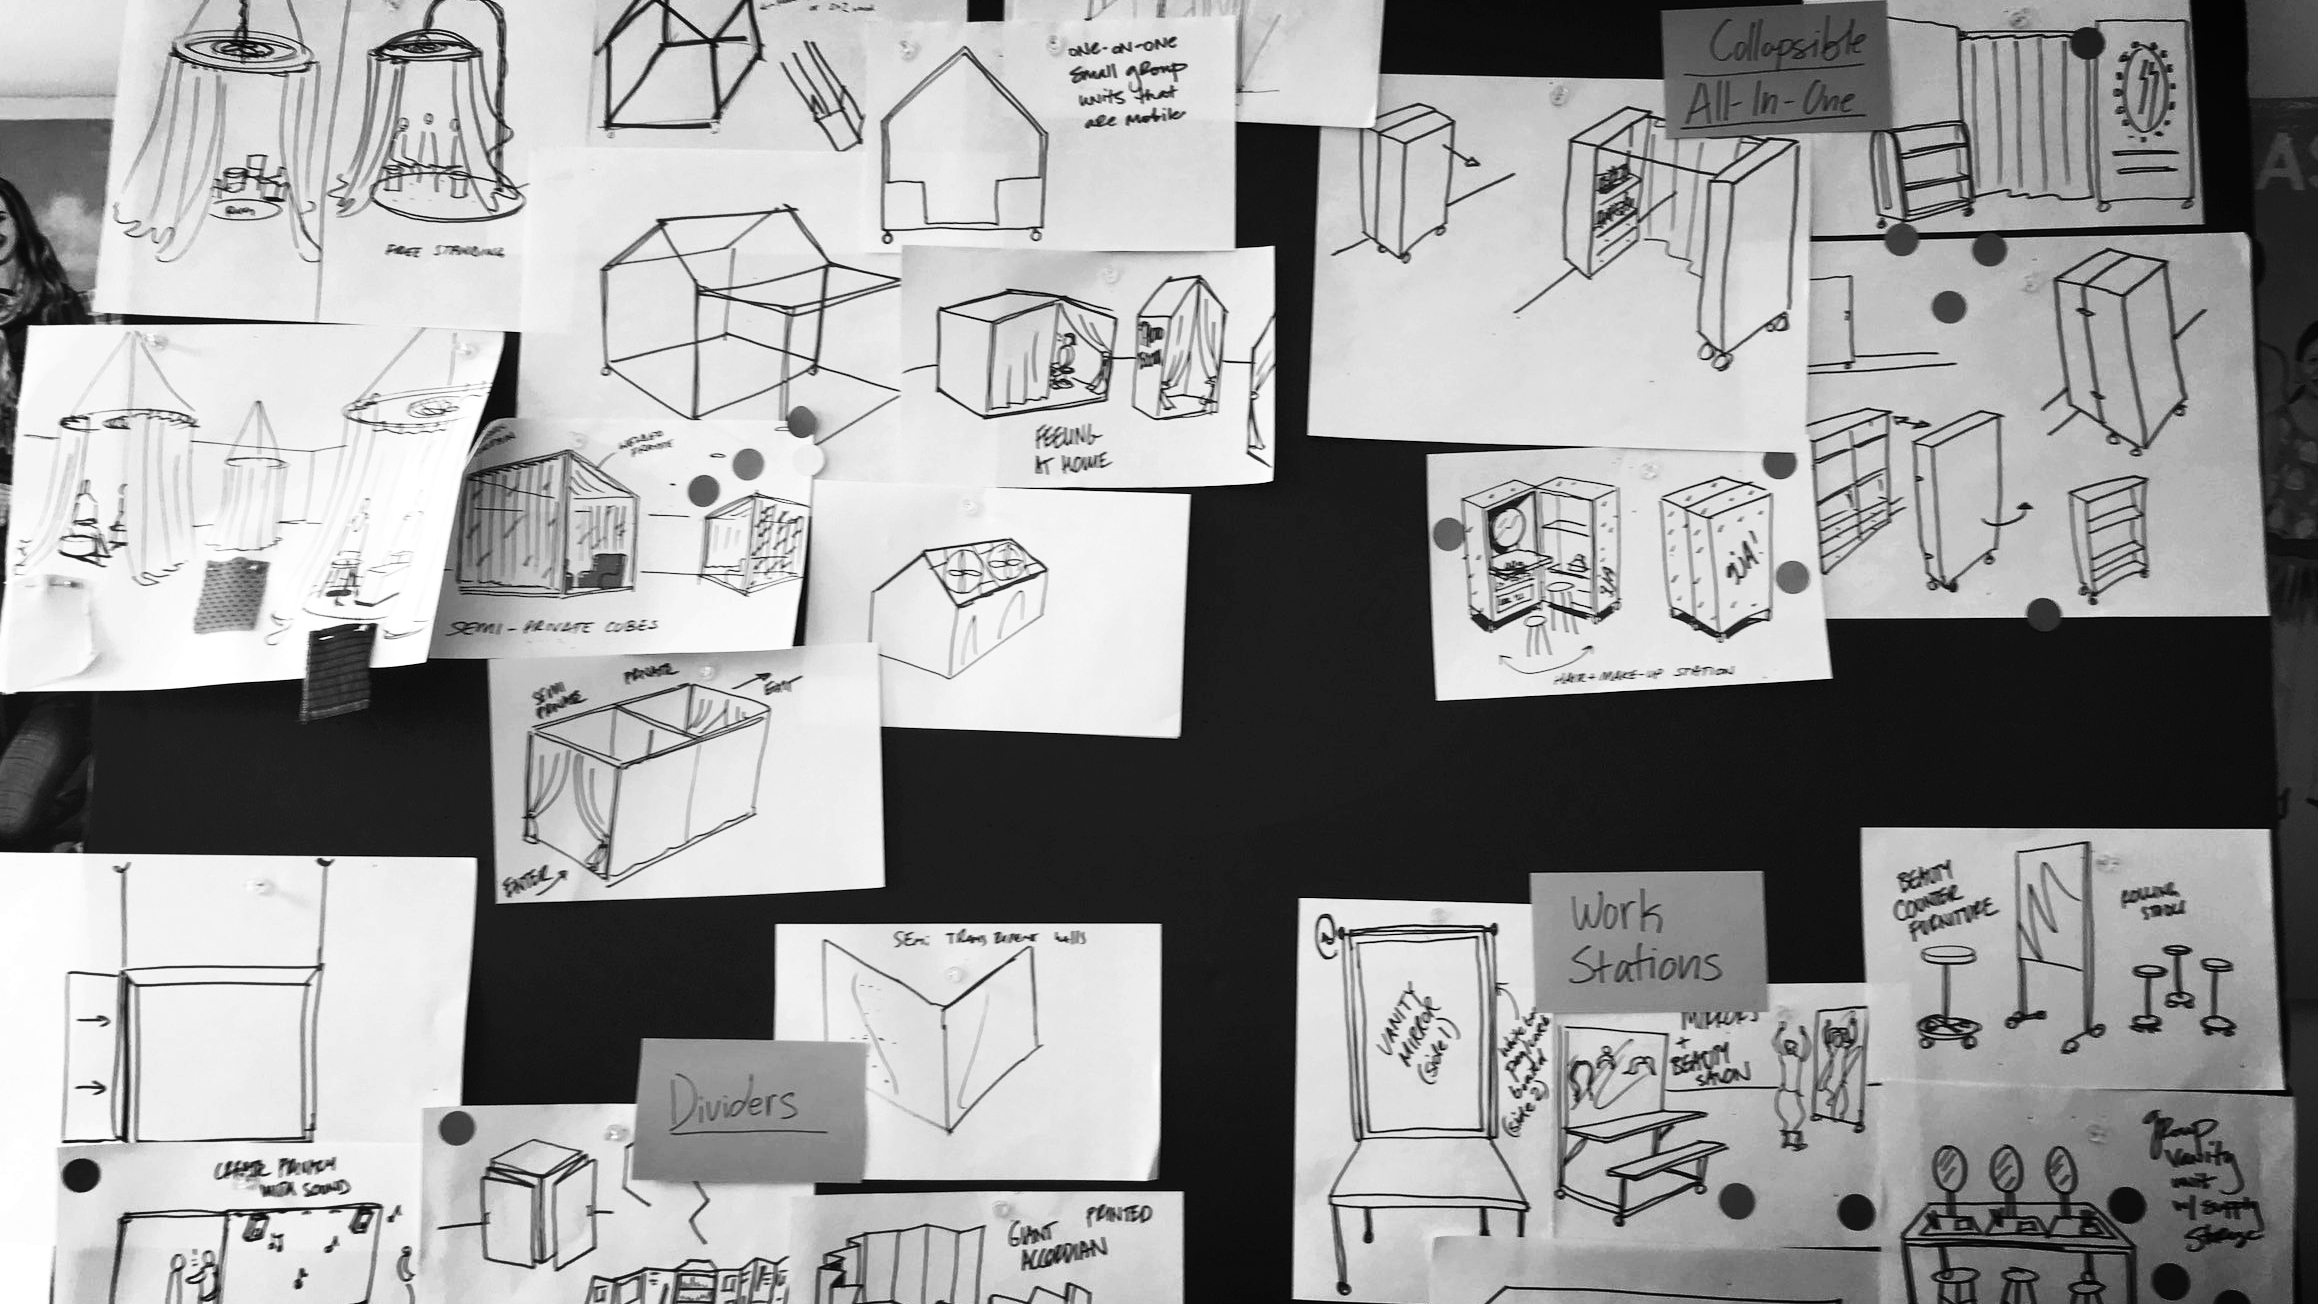 I ideate… - to explore unexpected directions andfind unique approaches.brainstorming, rapid prototyping, analogous inspiration